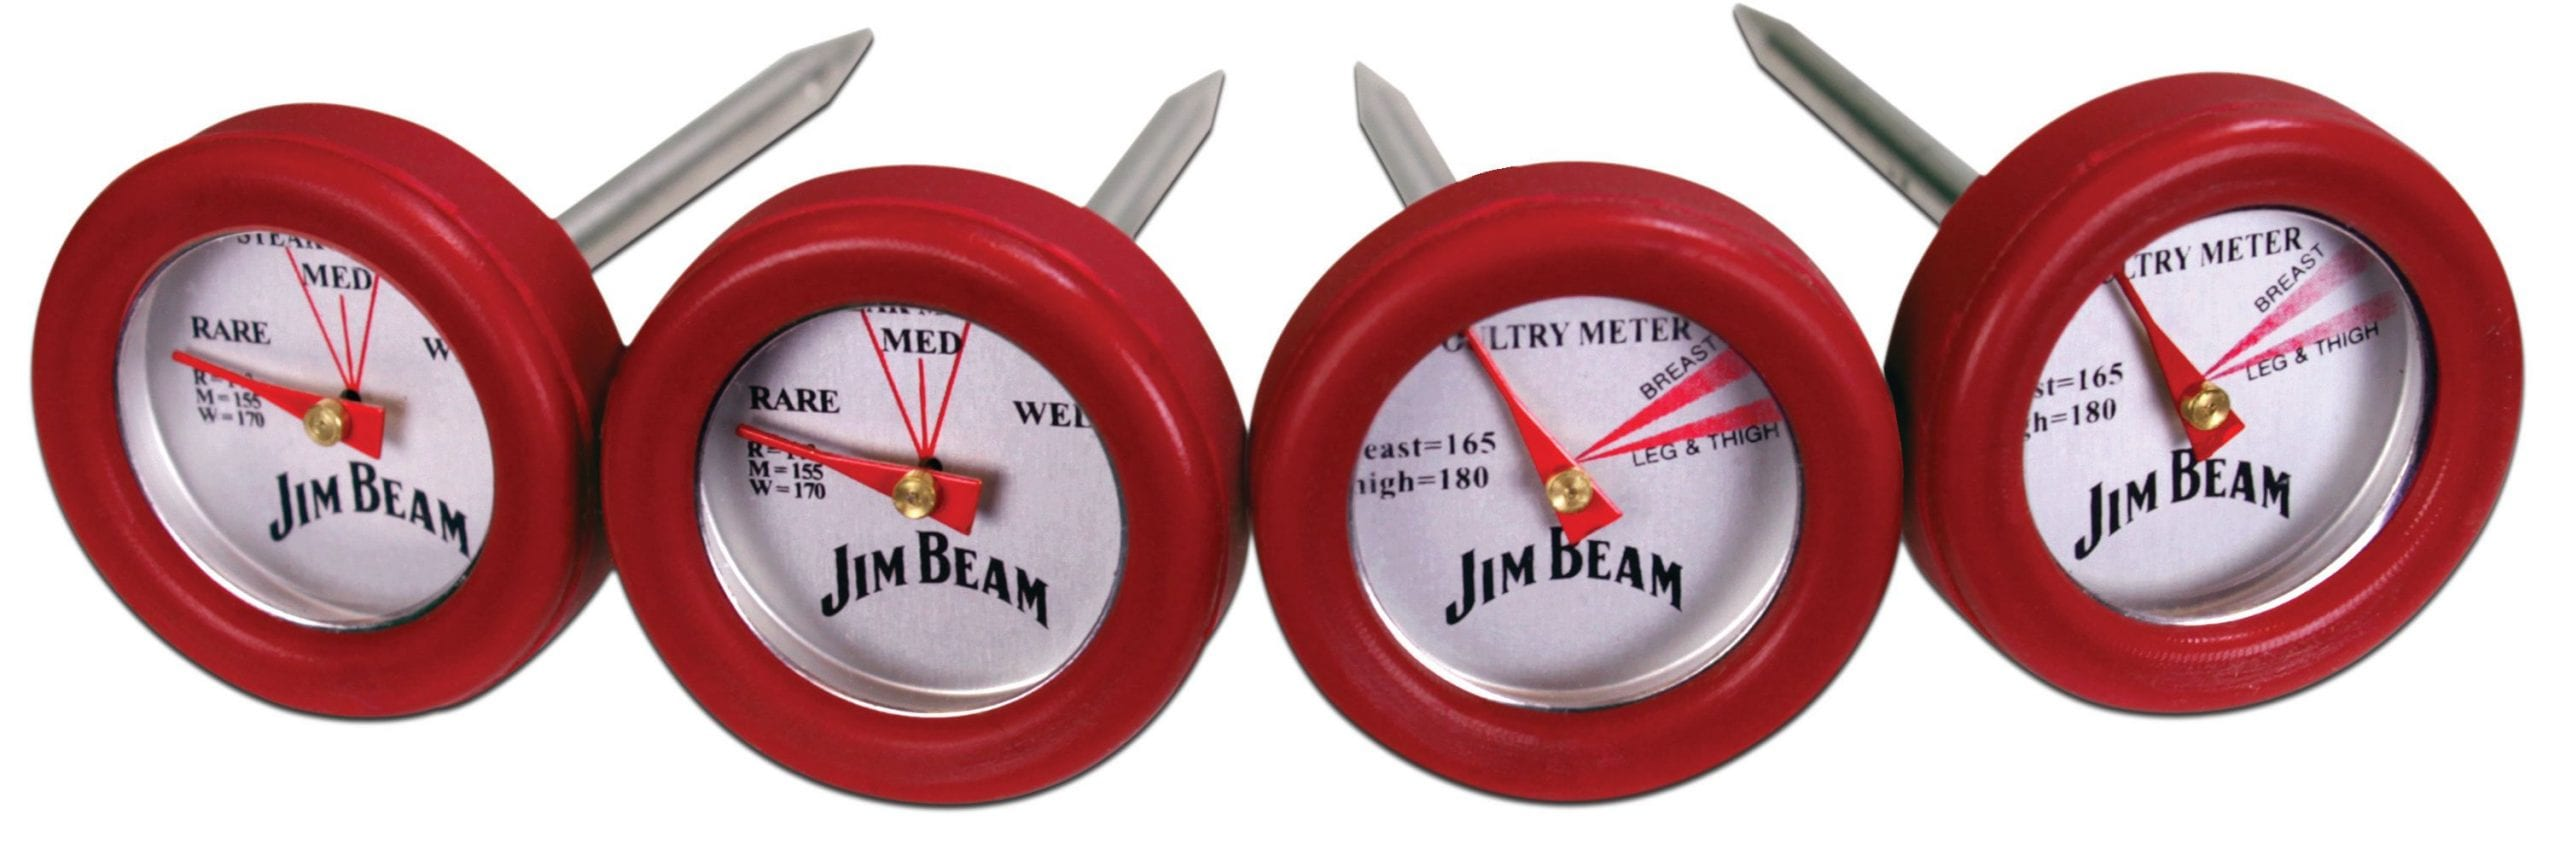 Jim Beam 4 Pack Meat Thermometer scaled